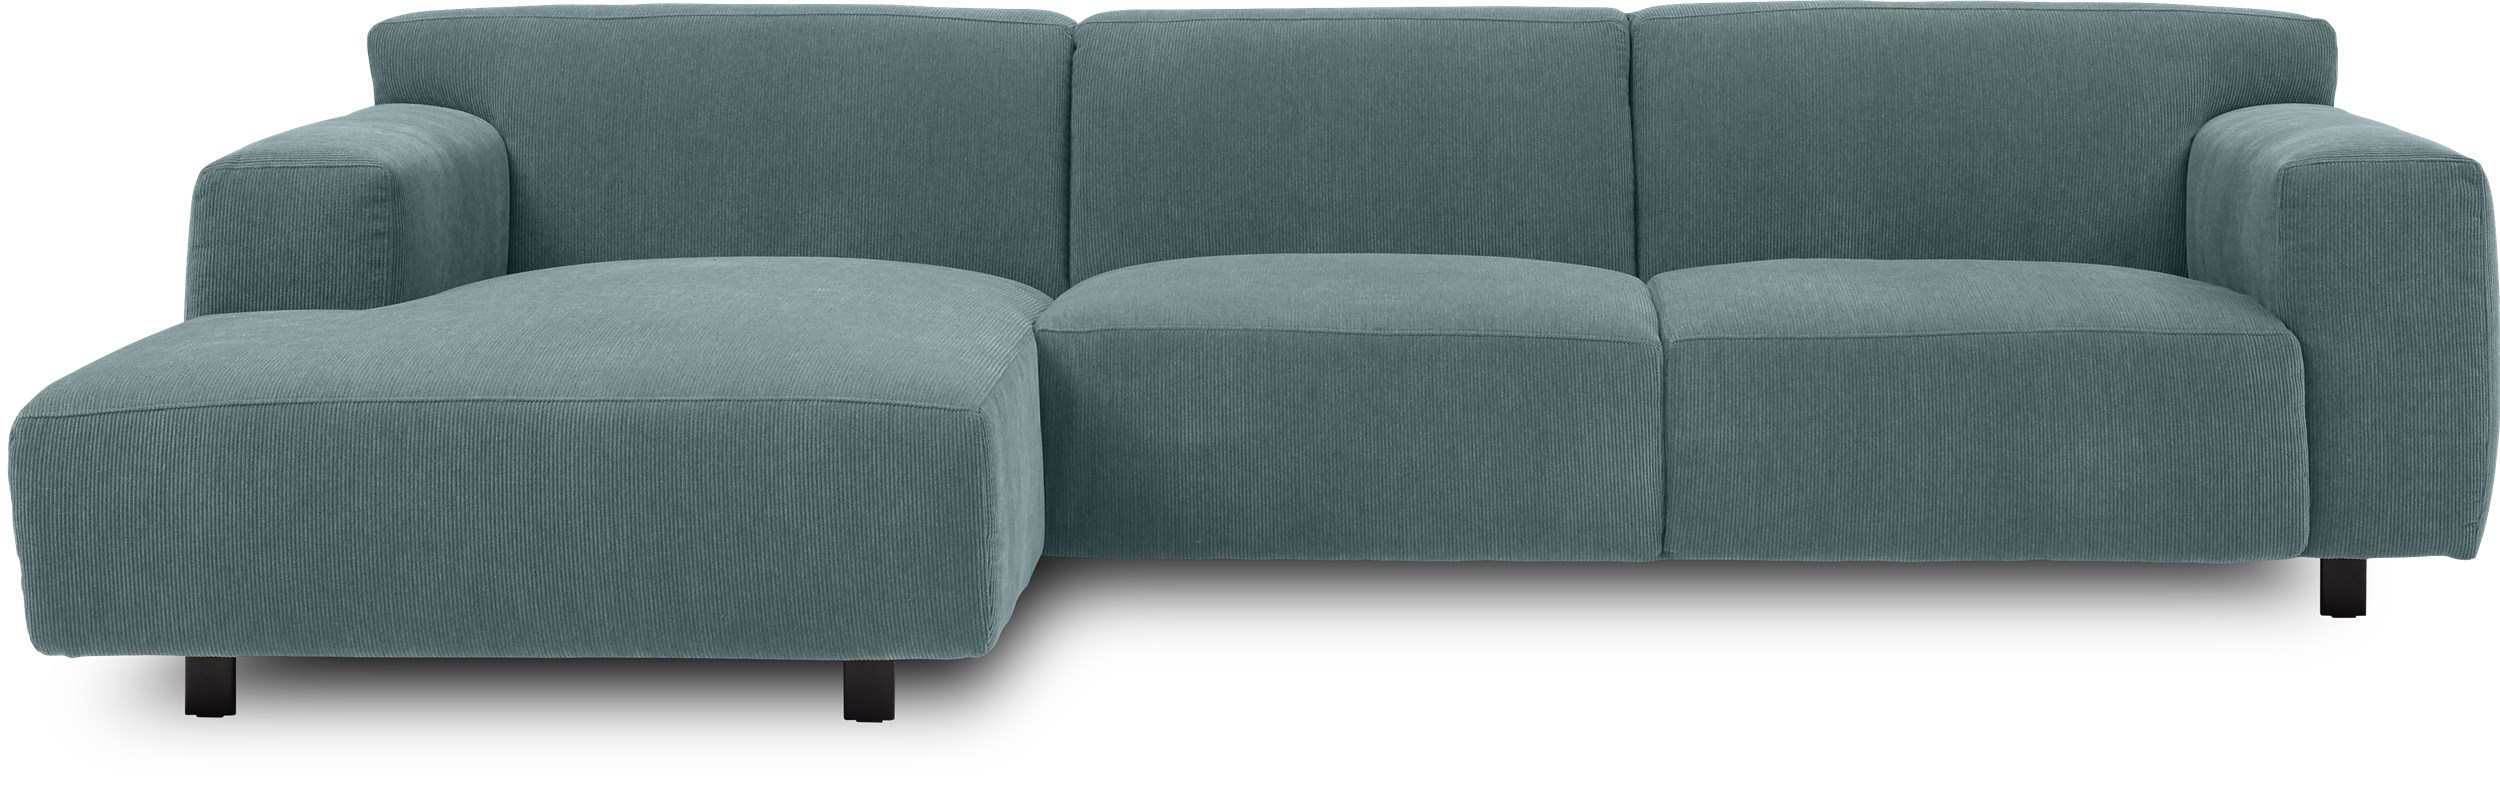 Siena Sofa med chaiselong